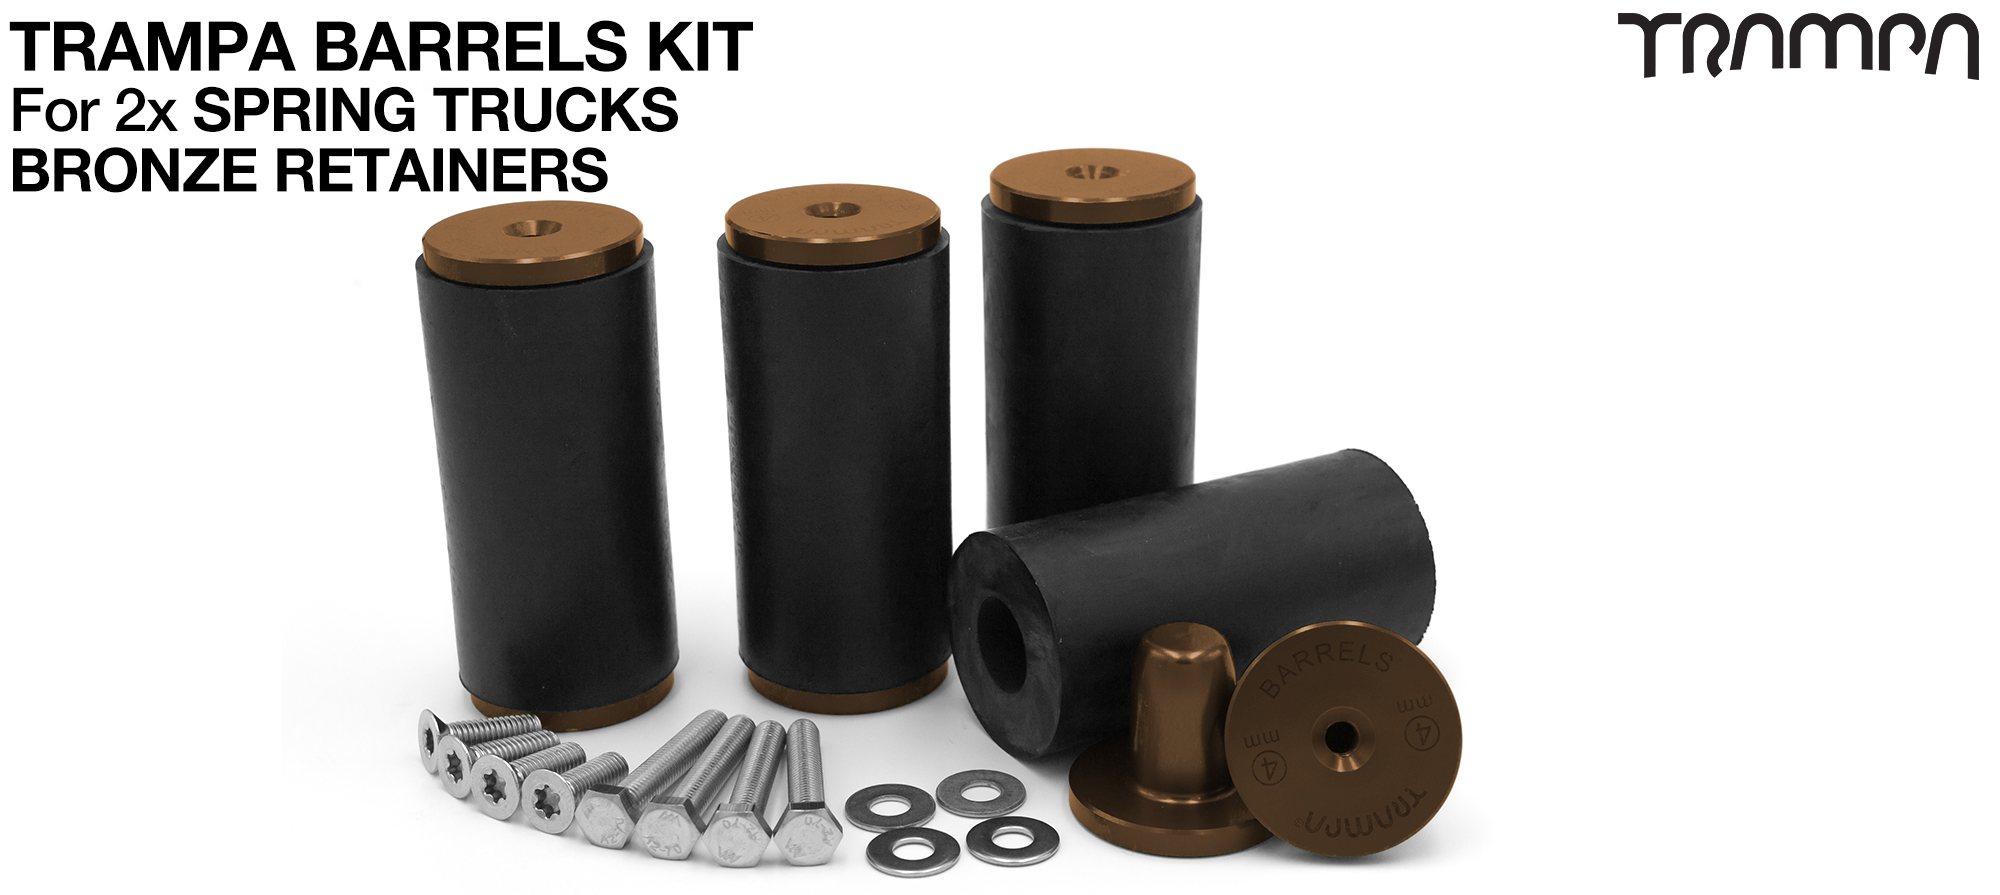 TRAMPA BARRELS Complete DECK Kit - BRONZE